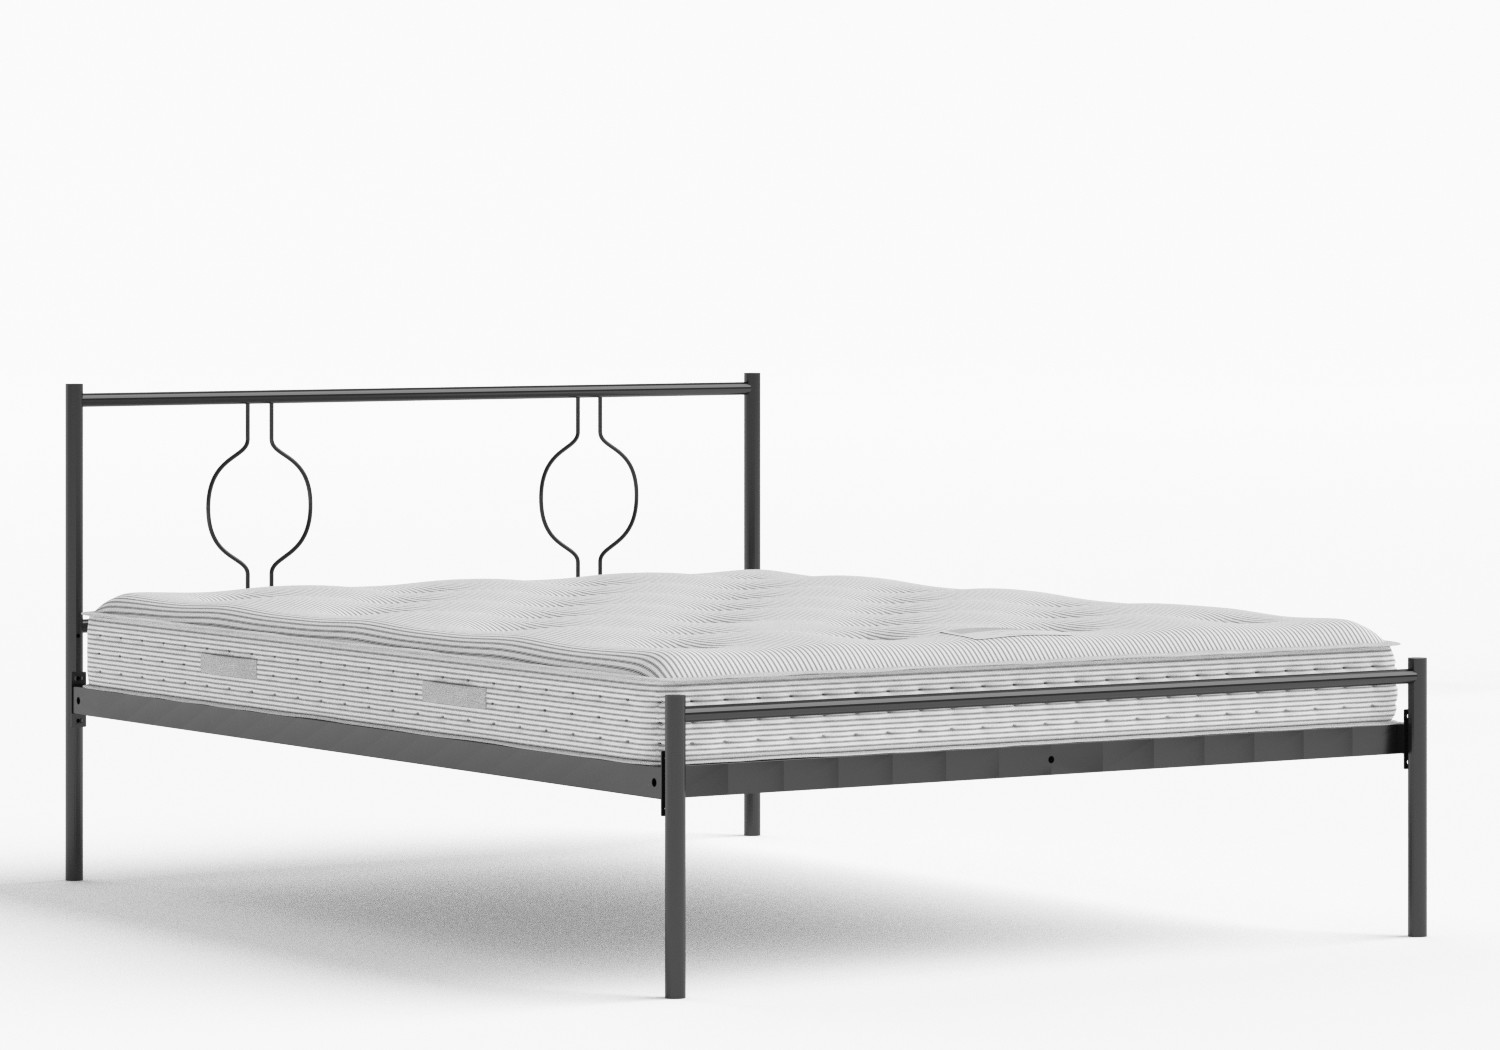 Meiji Iron/Metal Bed in Satin Black shown with Juno 1 mattress